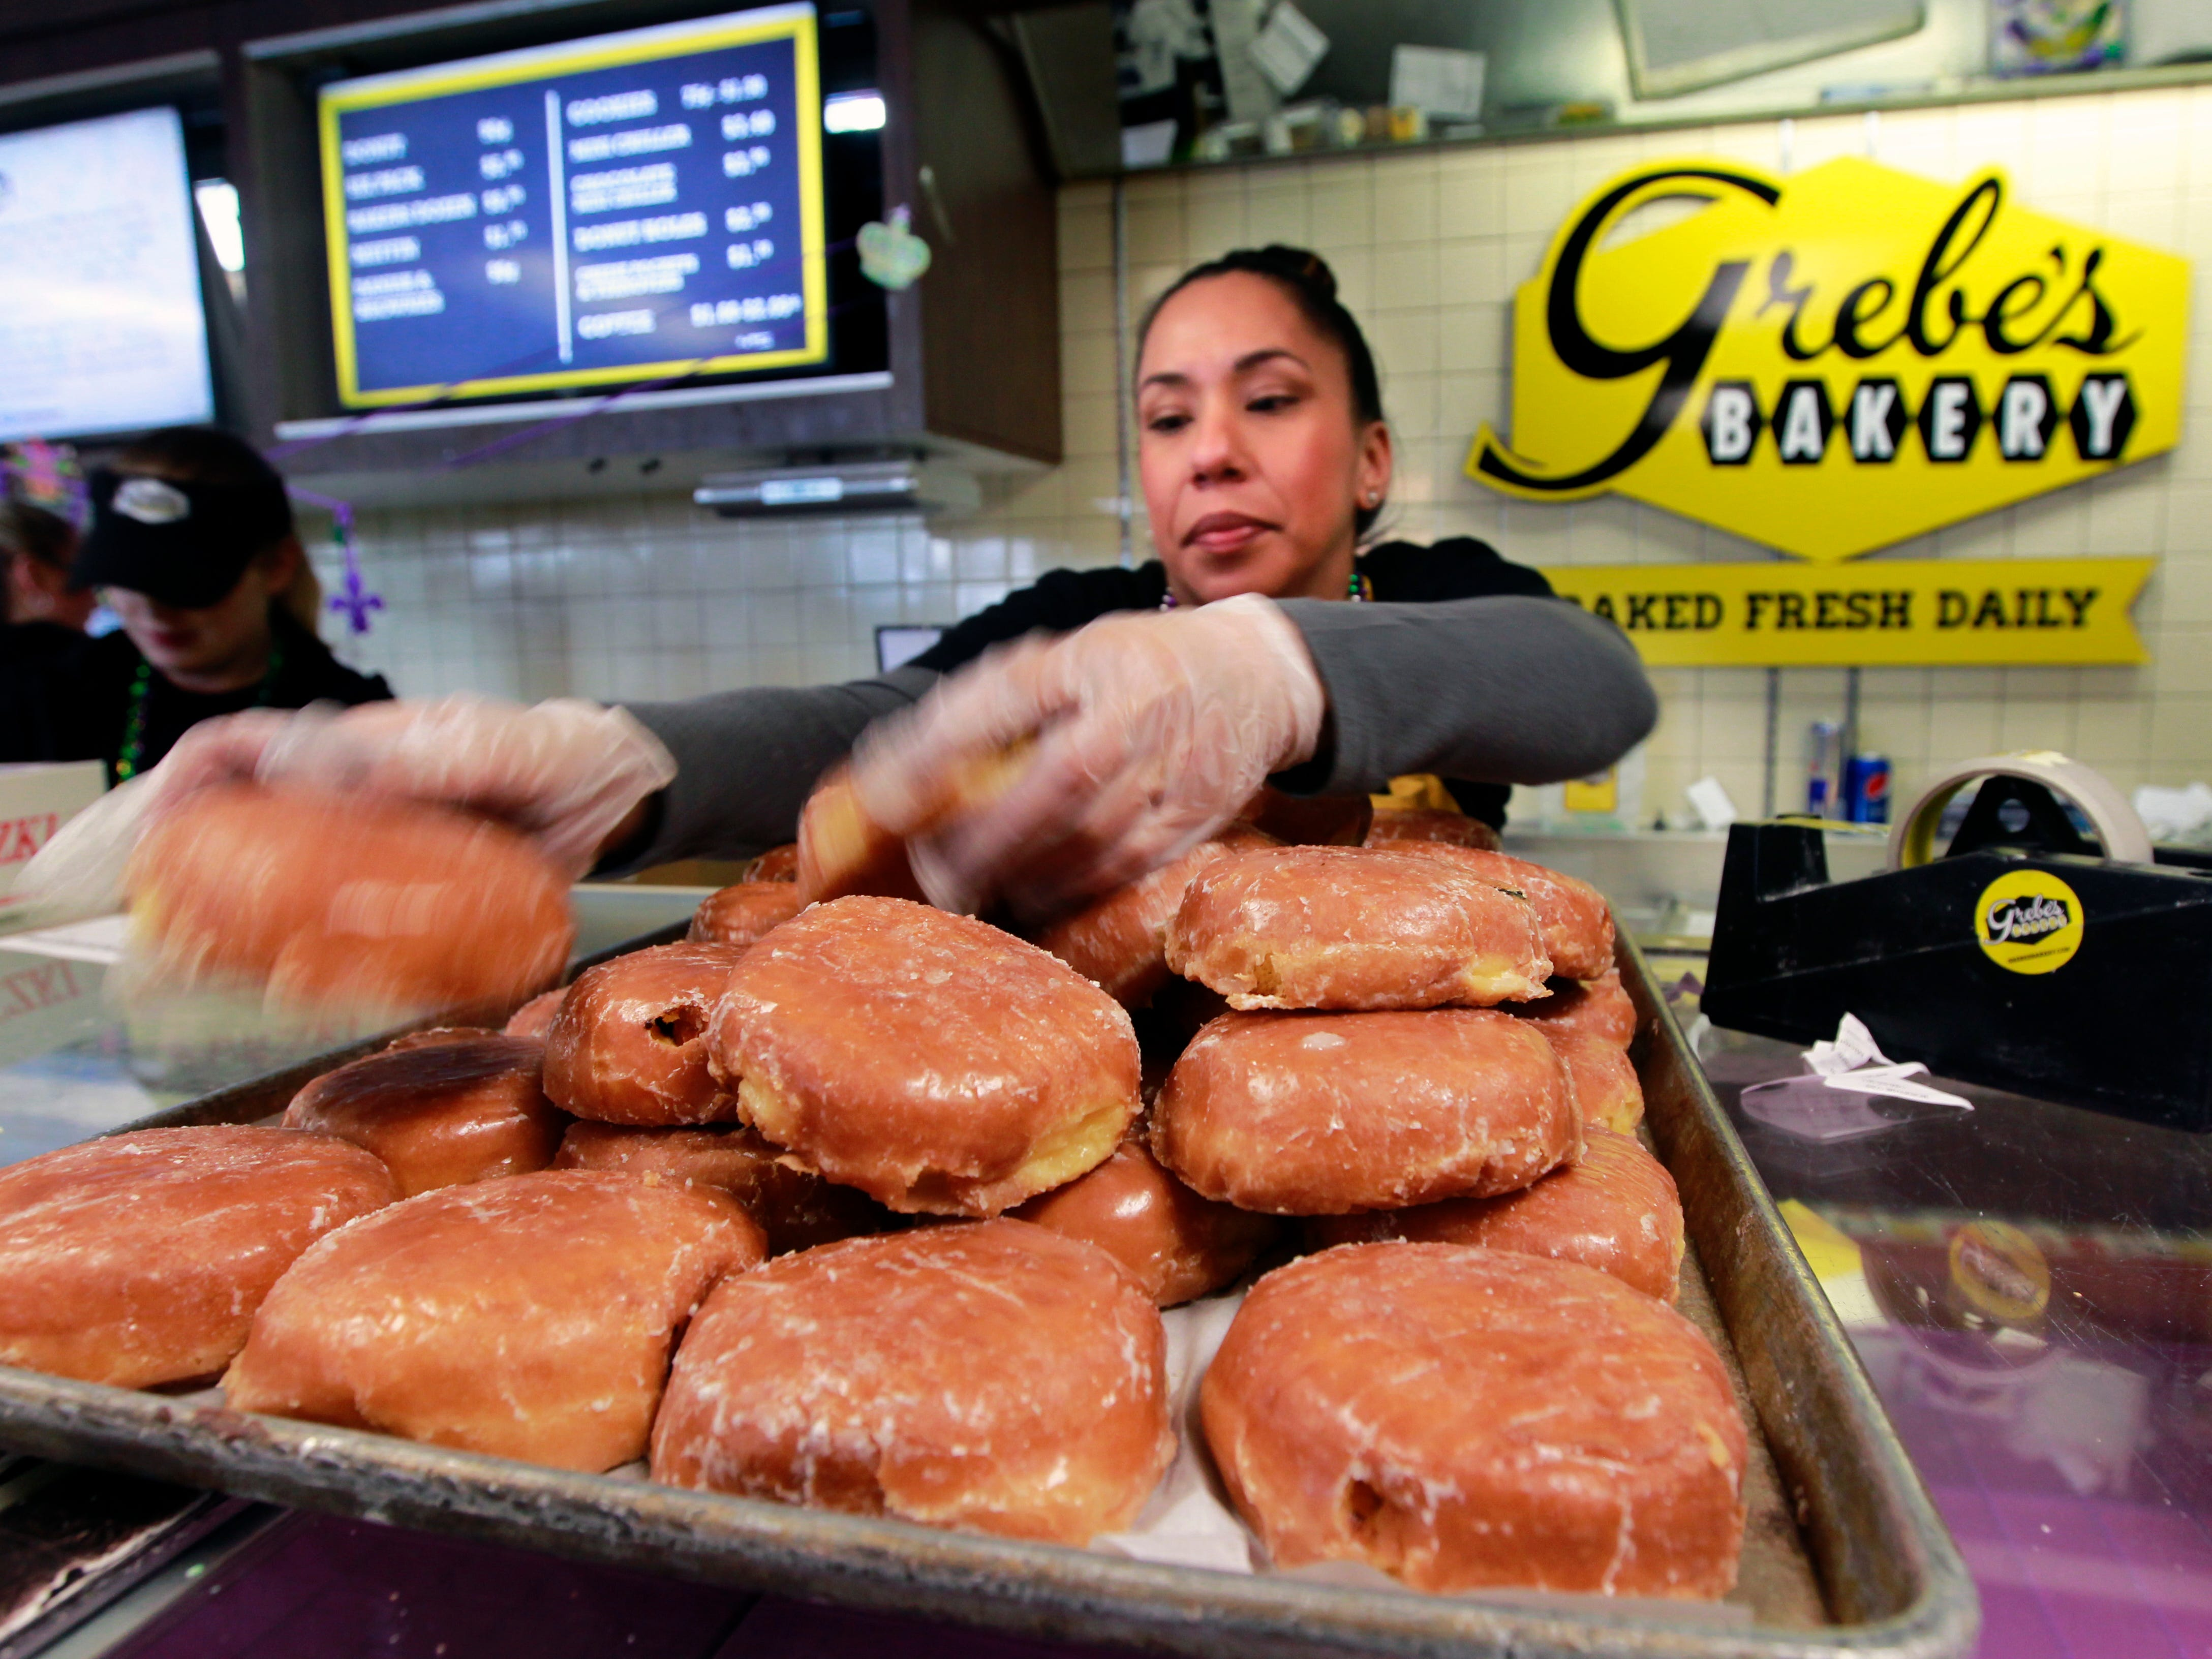 Tanya Aguirre restocks a prune paczki tray for customers at Grebe's Bakery in West Allis.